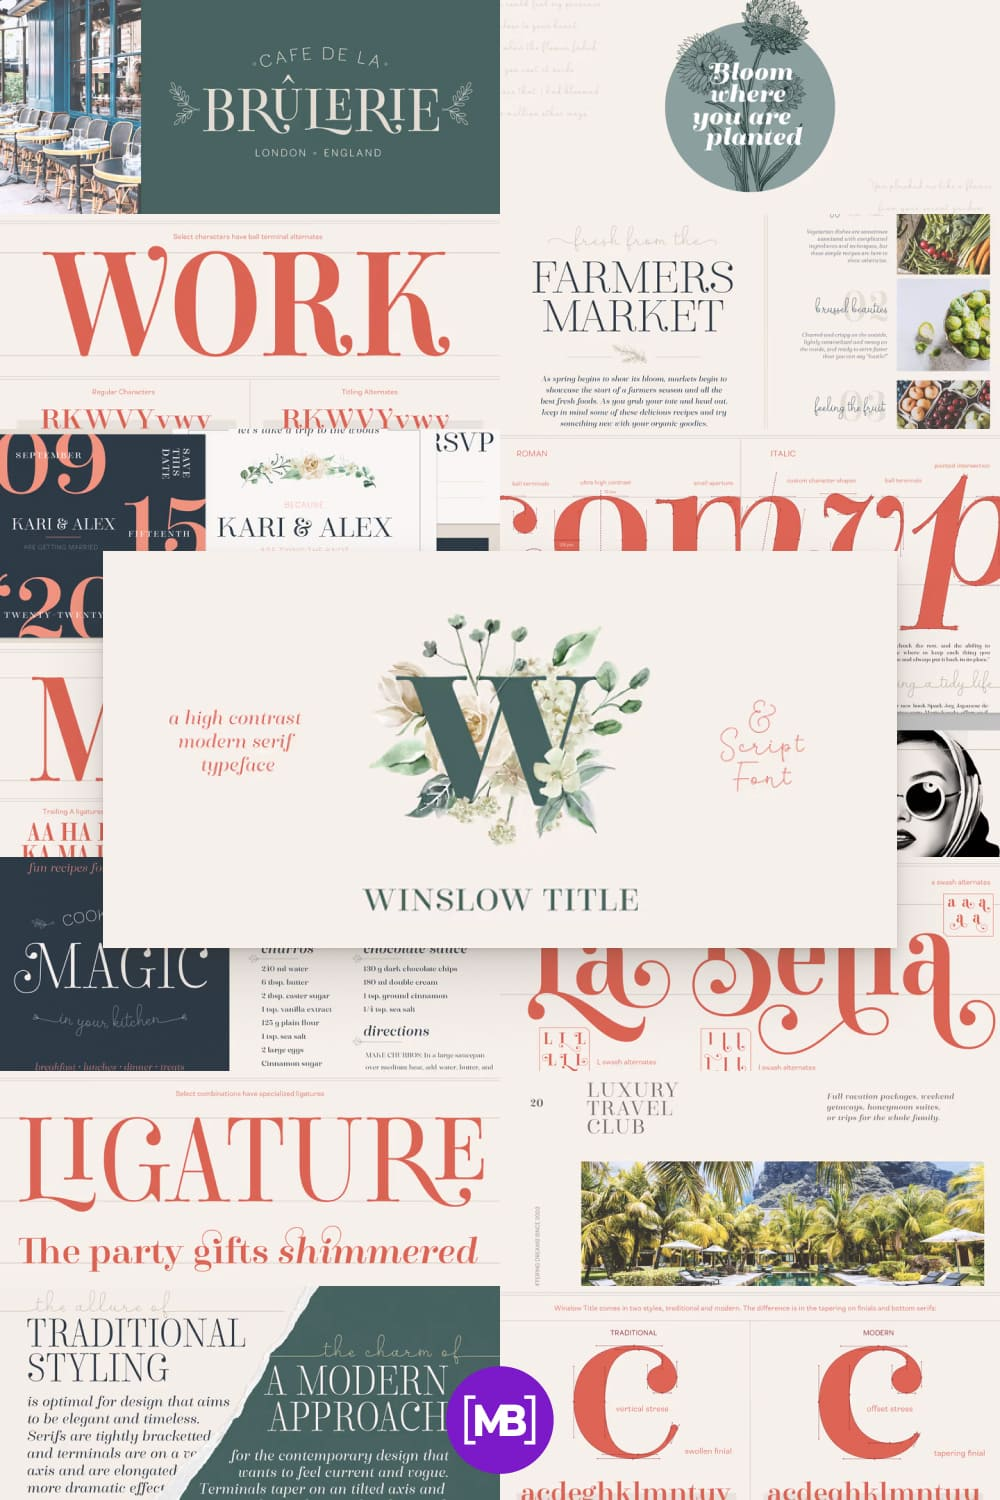 This is a lovely font. It is as if nymphs created it in a magical forest.